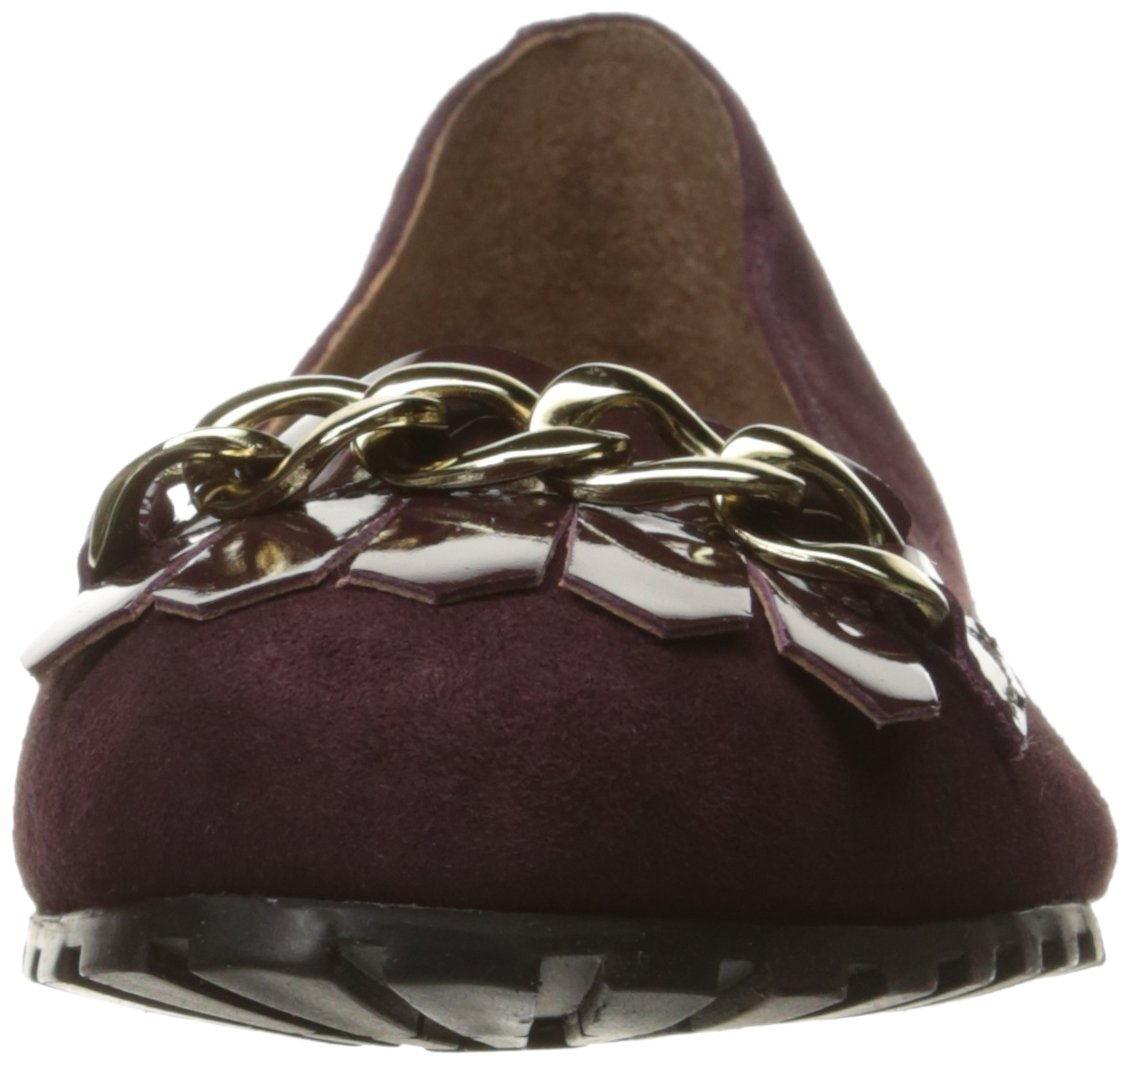 French Sole FS/NY Women's Sunshine Ballet Flat B01N6QDNCI 6 B(M) US|Burgundy Suede